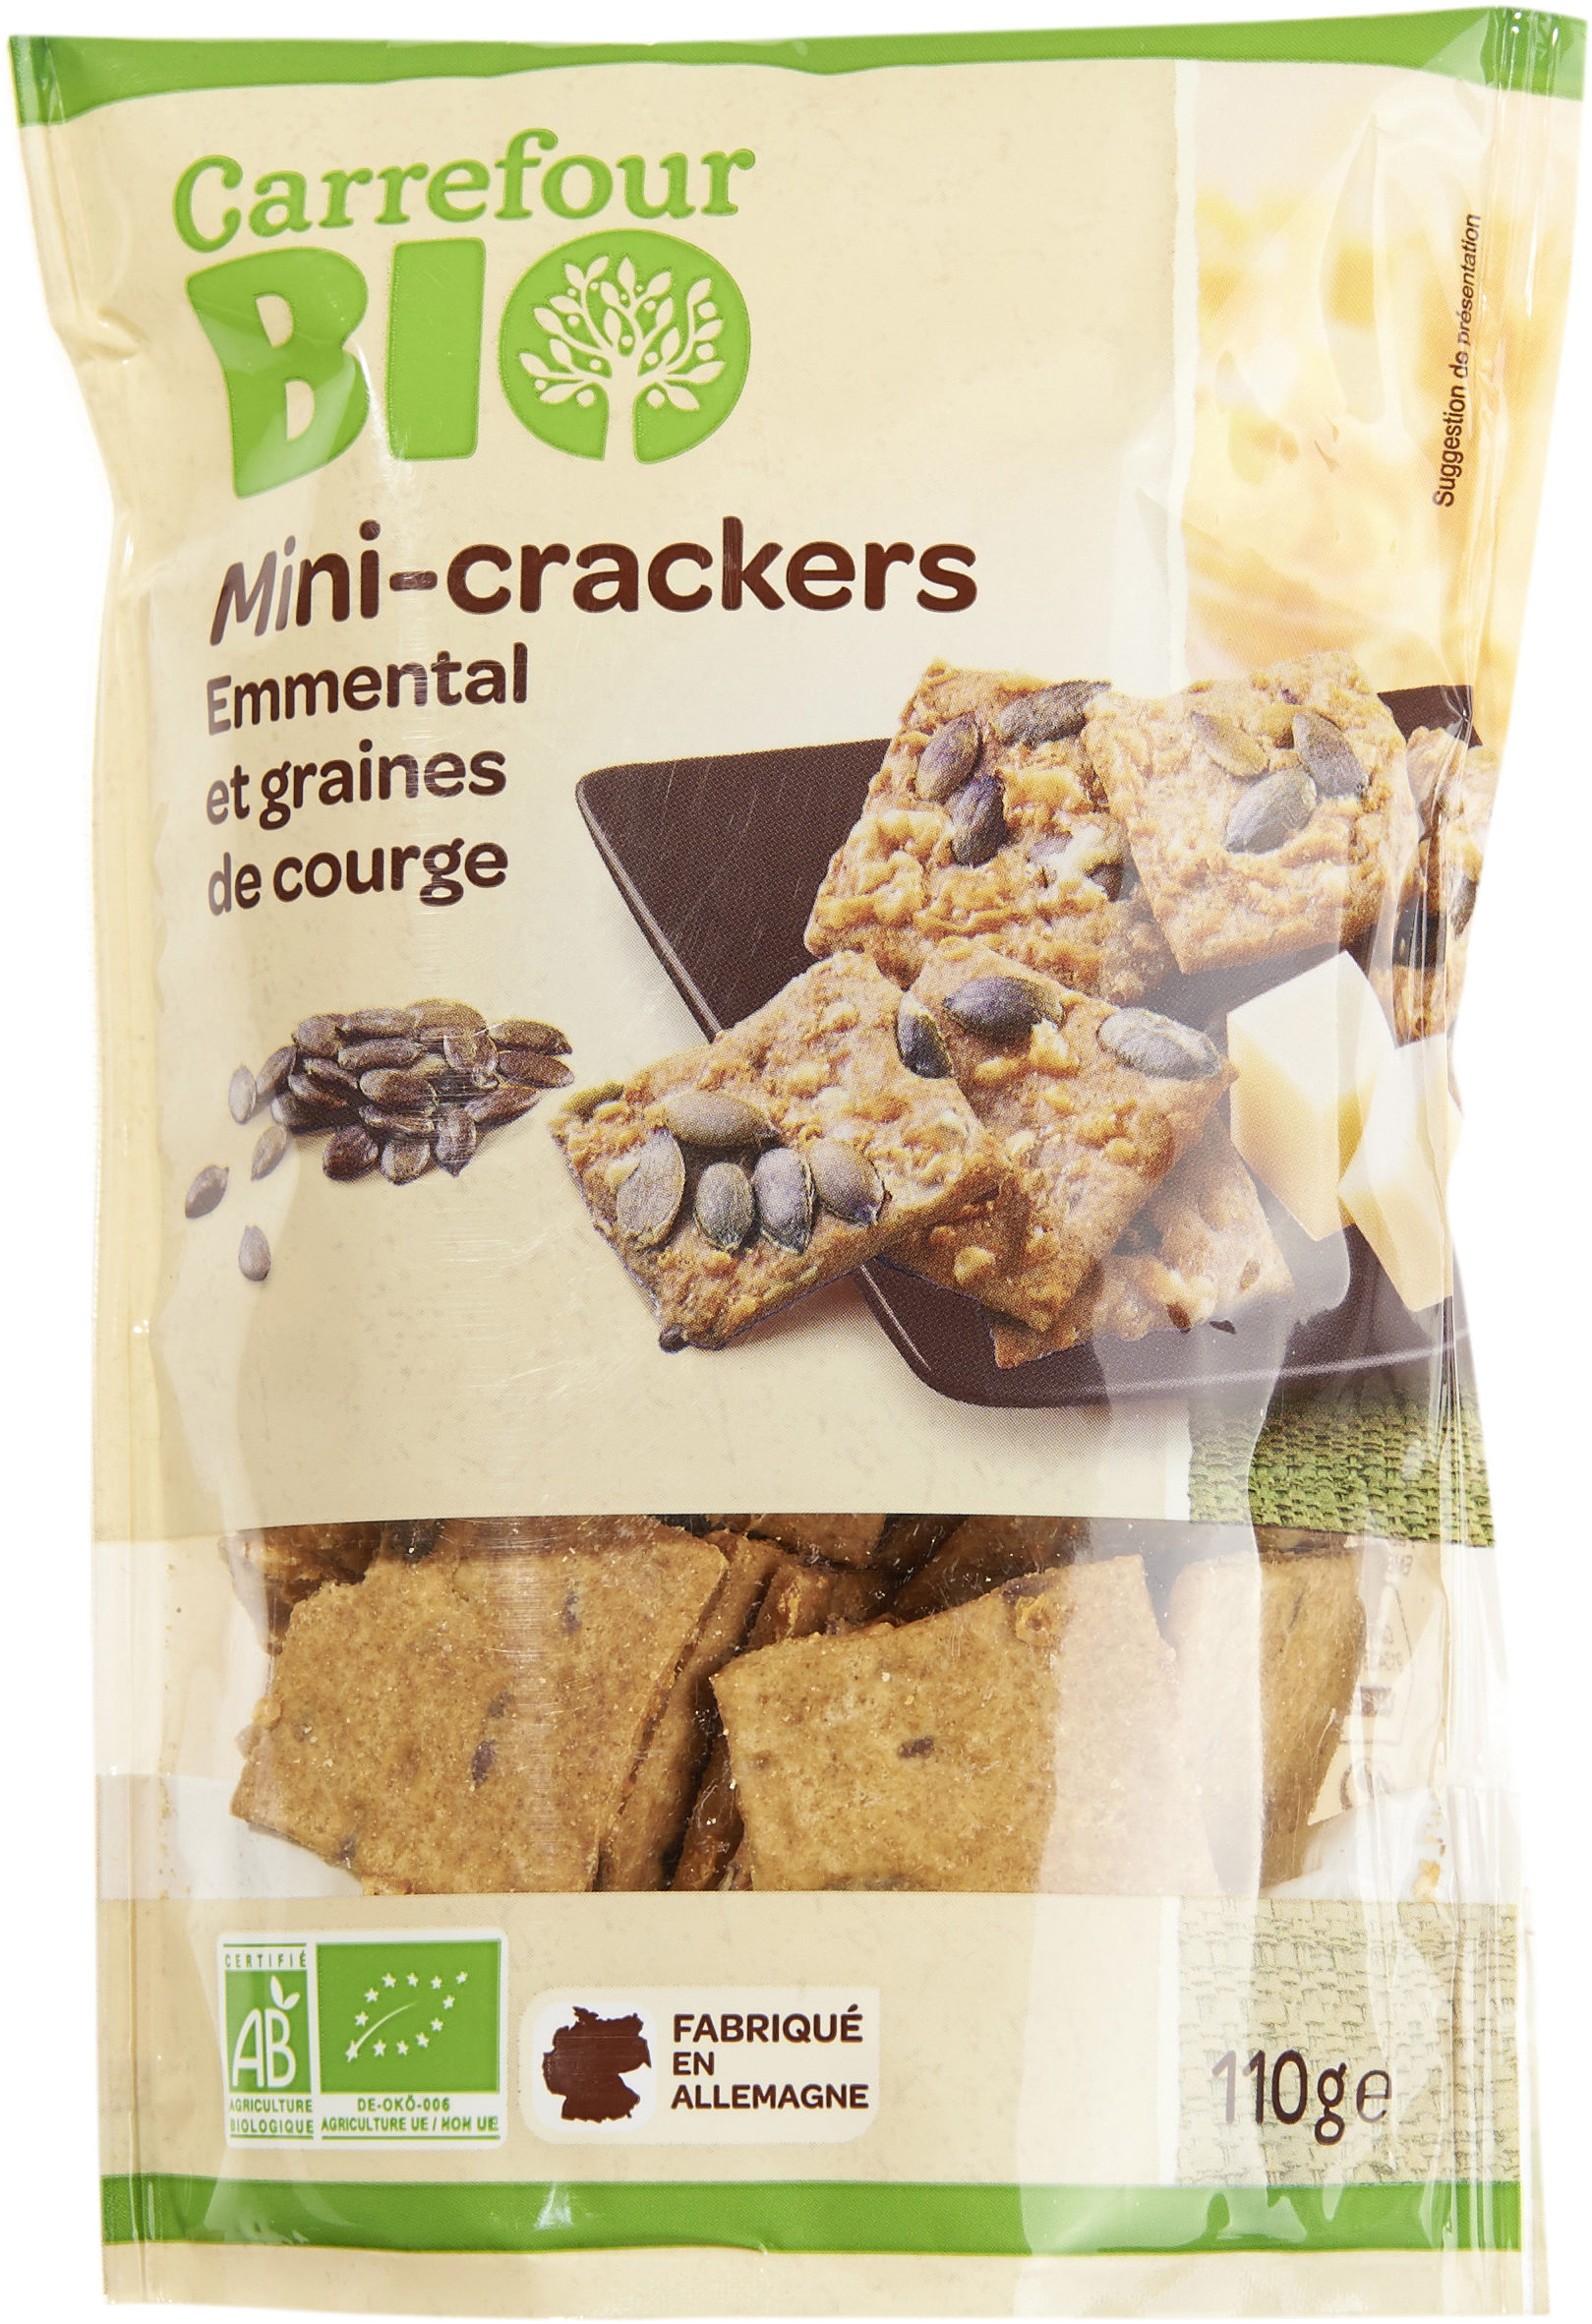 Mini-crackers emmental et graines de courge - Producte - fr